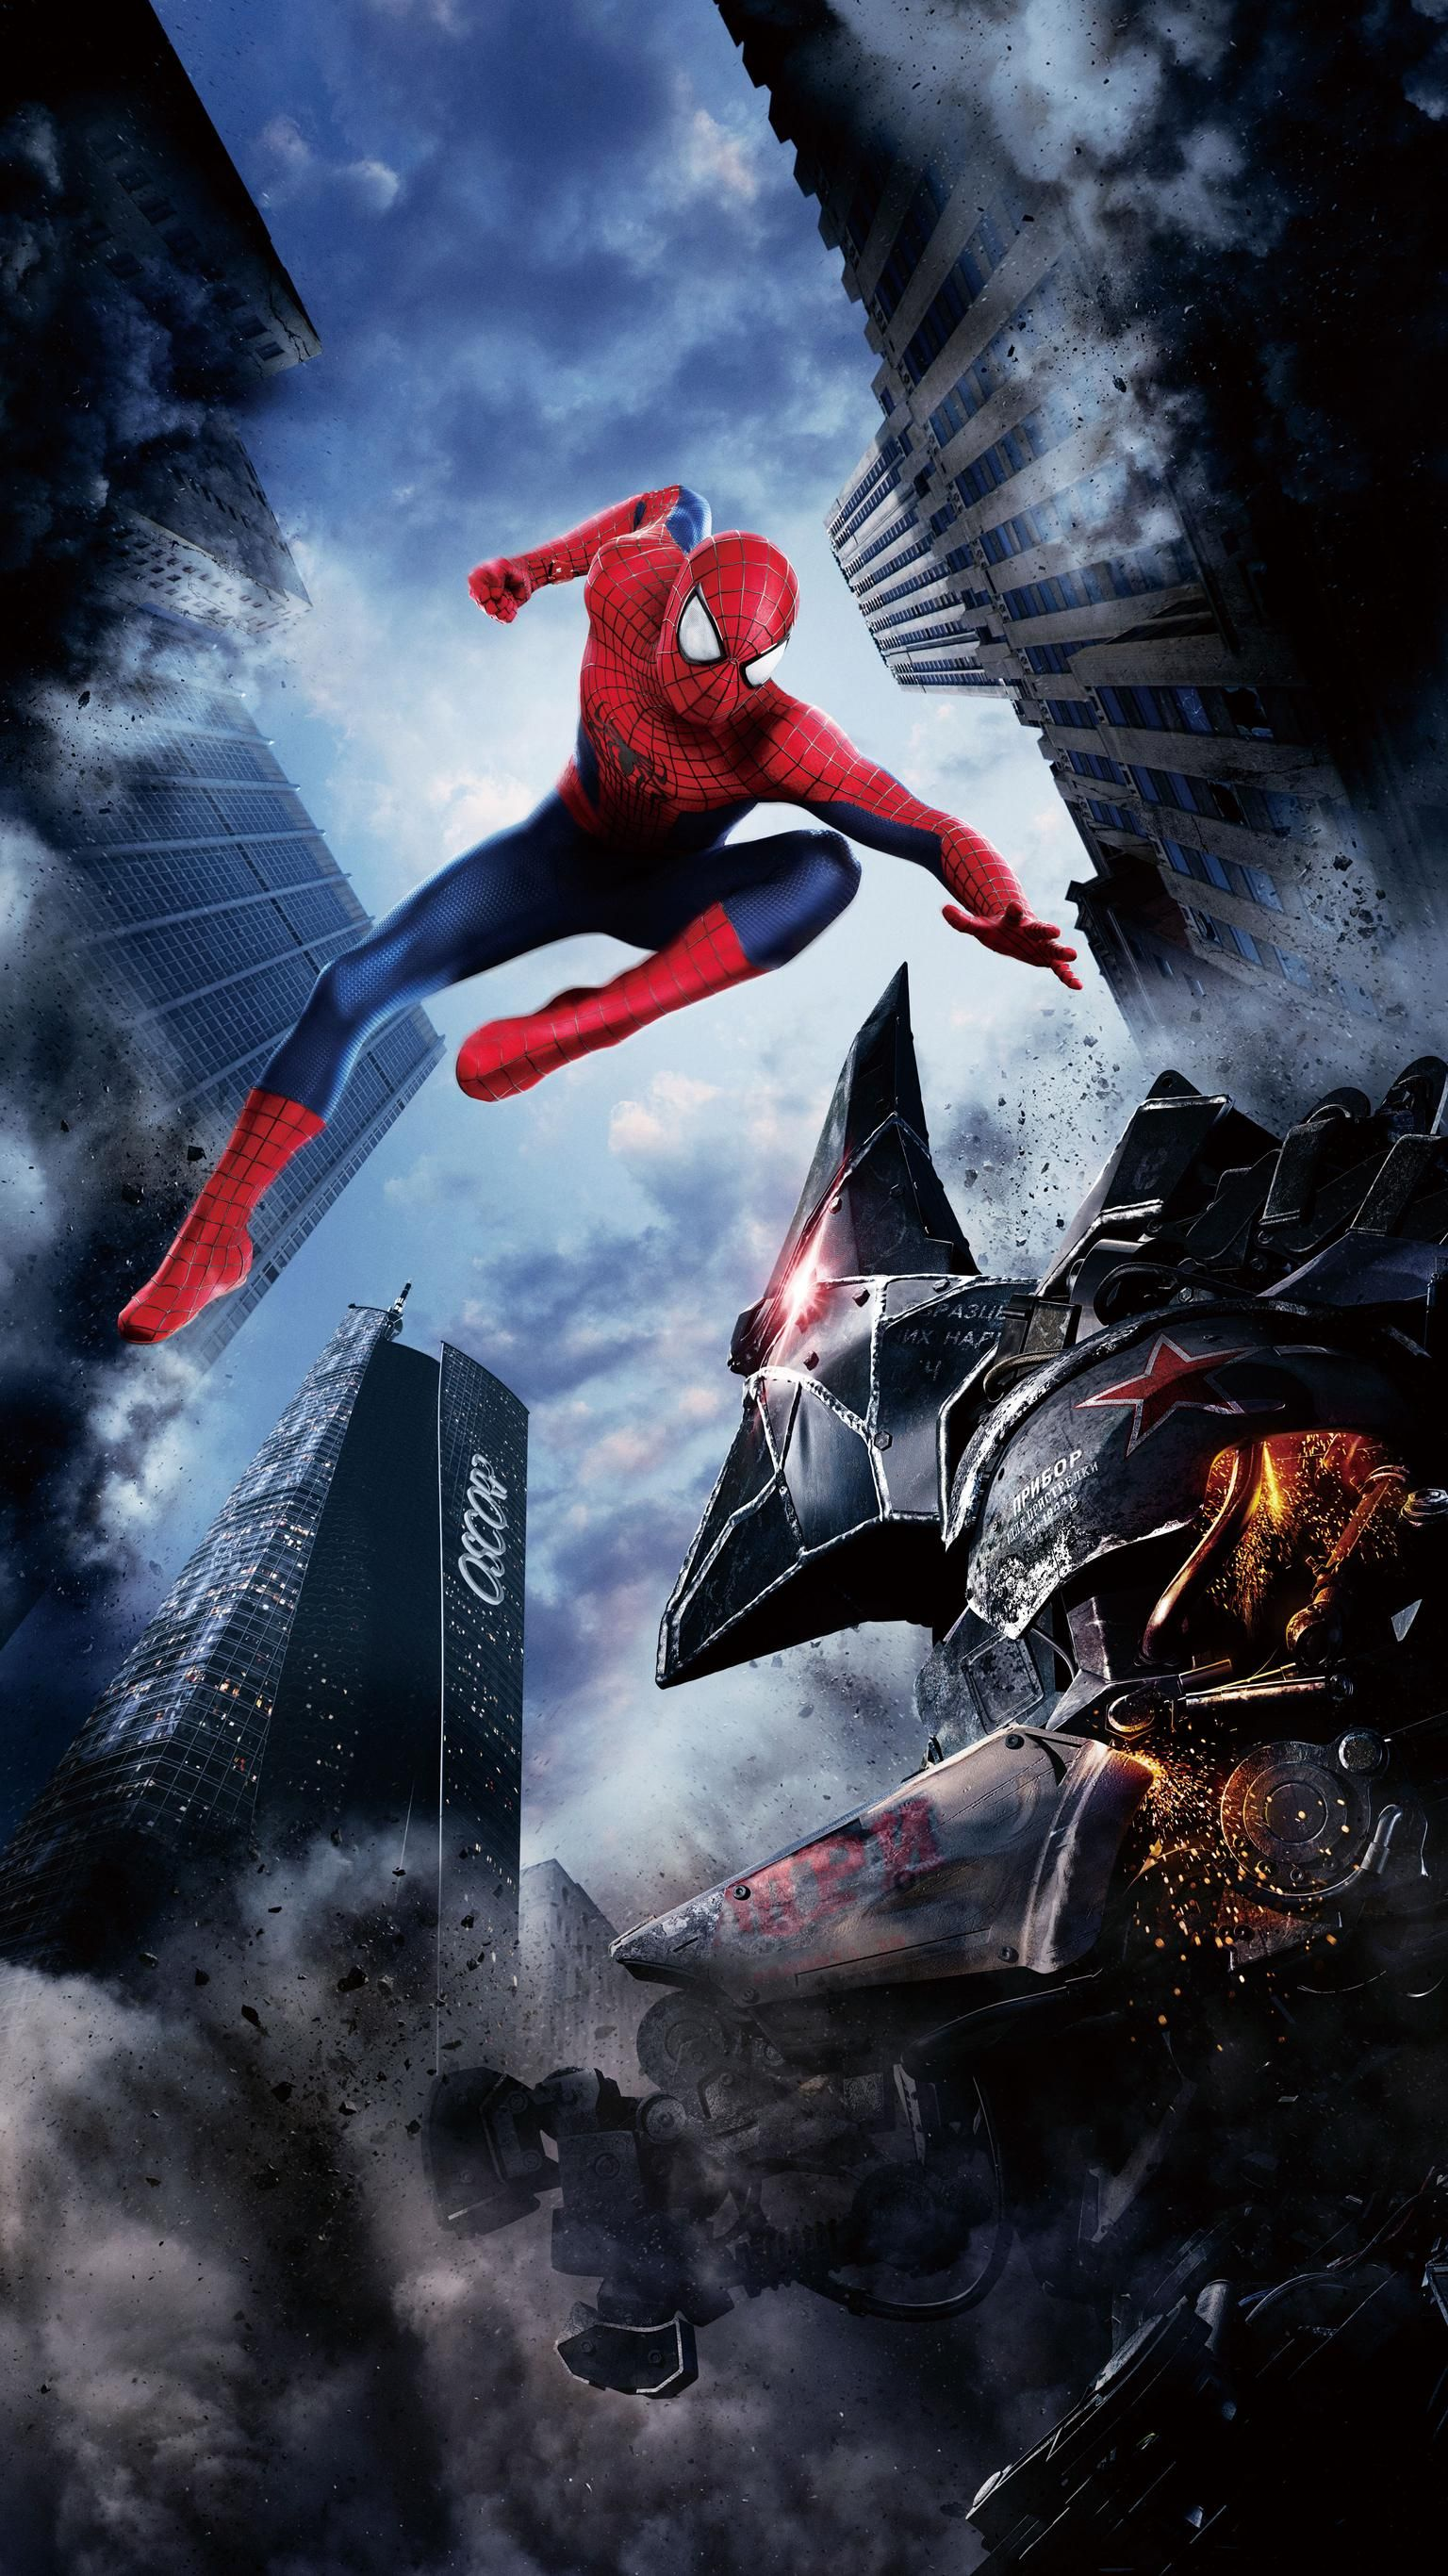 The Amazing Spider Man 2 2014 Phone Wallpaper Moviemania Amazing Spiderman Amazing Spiderman Movie The Amazing Spiderman 2 The amazing spider man 2 wallpaper for